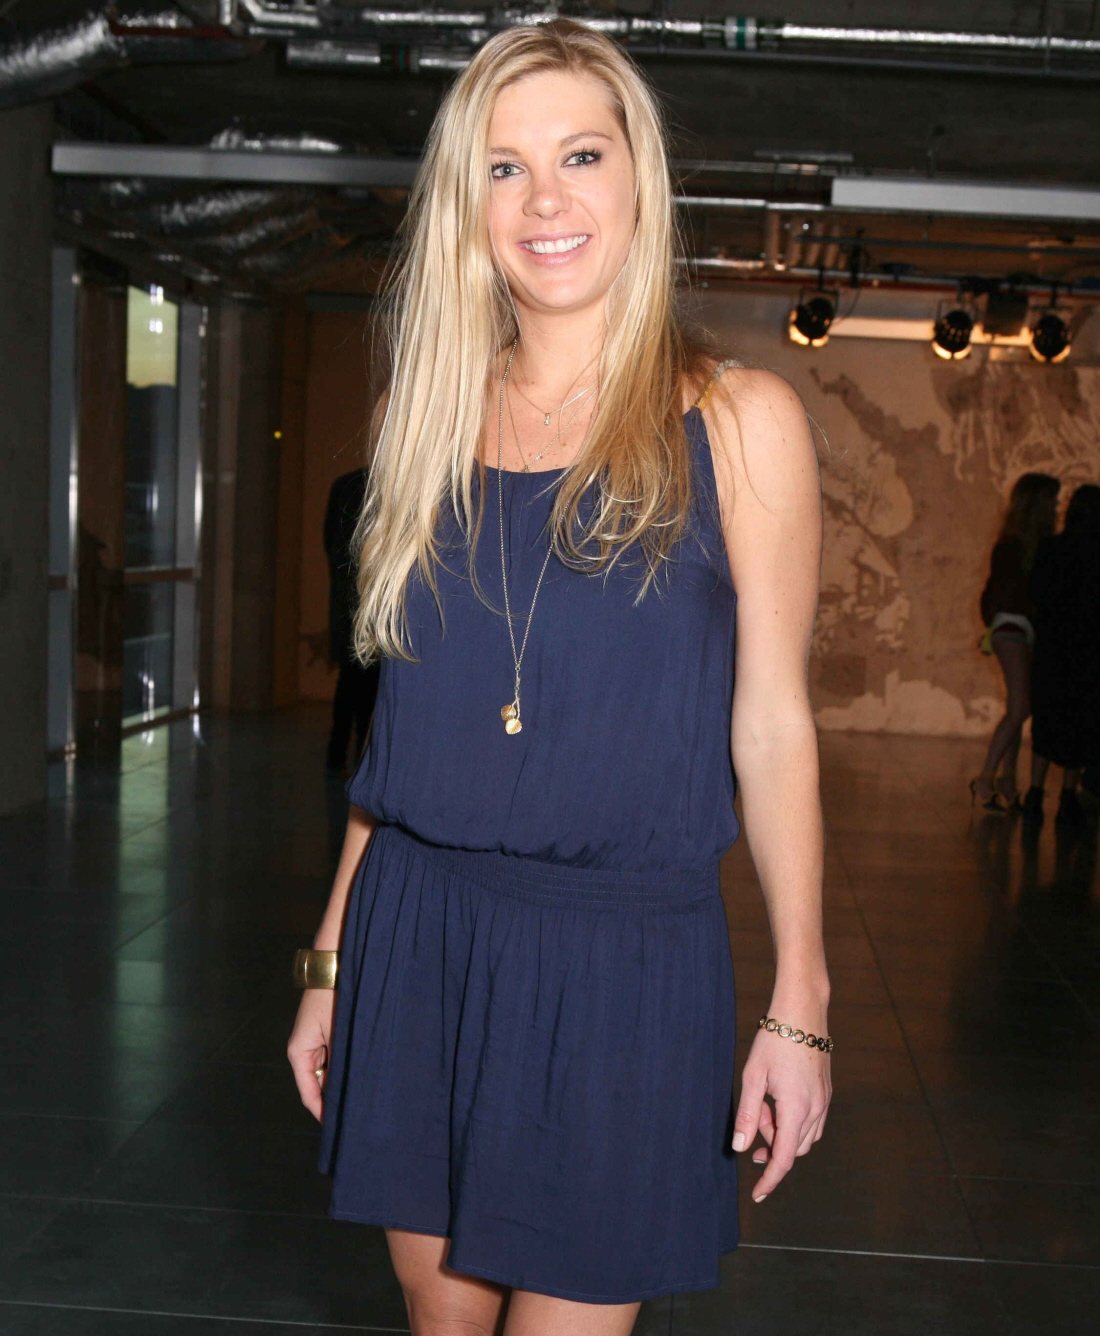 Chelsy Davy Doesn't Regret Not Marrying Prince Harry: 'I'm